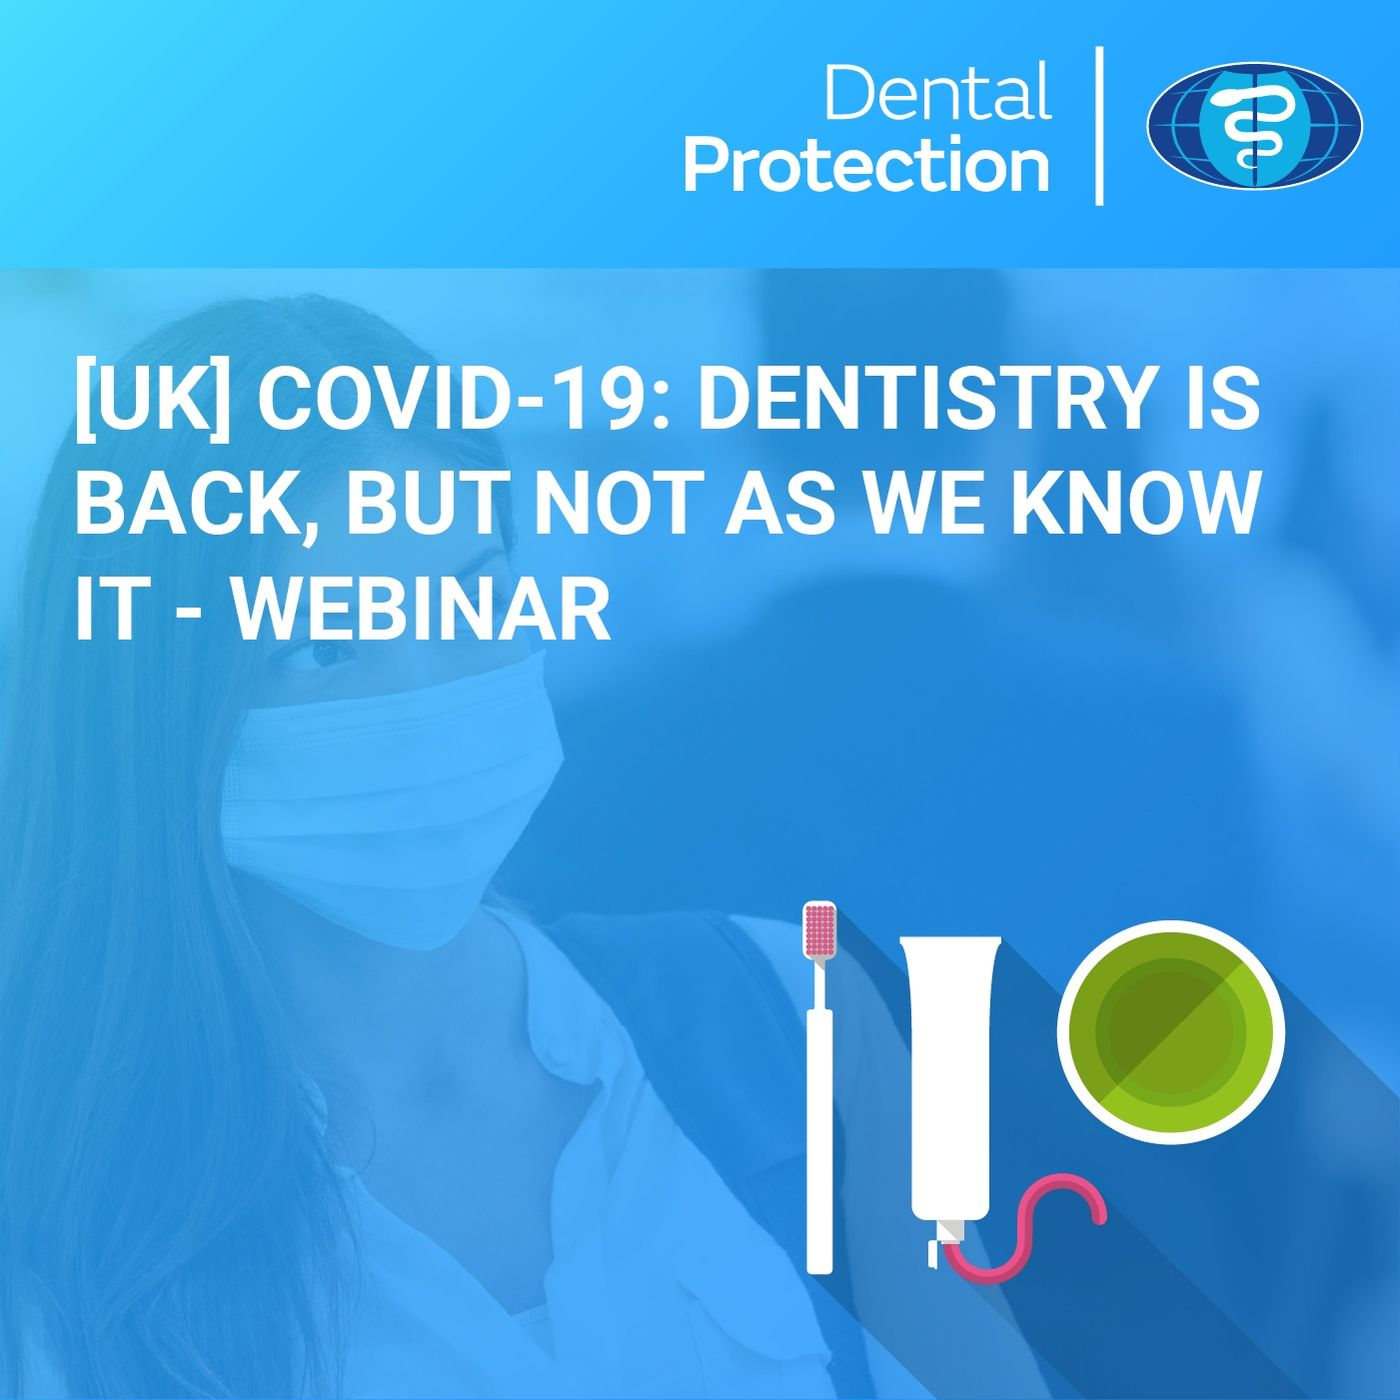 [UK] COVID-19: Dentistry is back, but not as we know it - Webinar